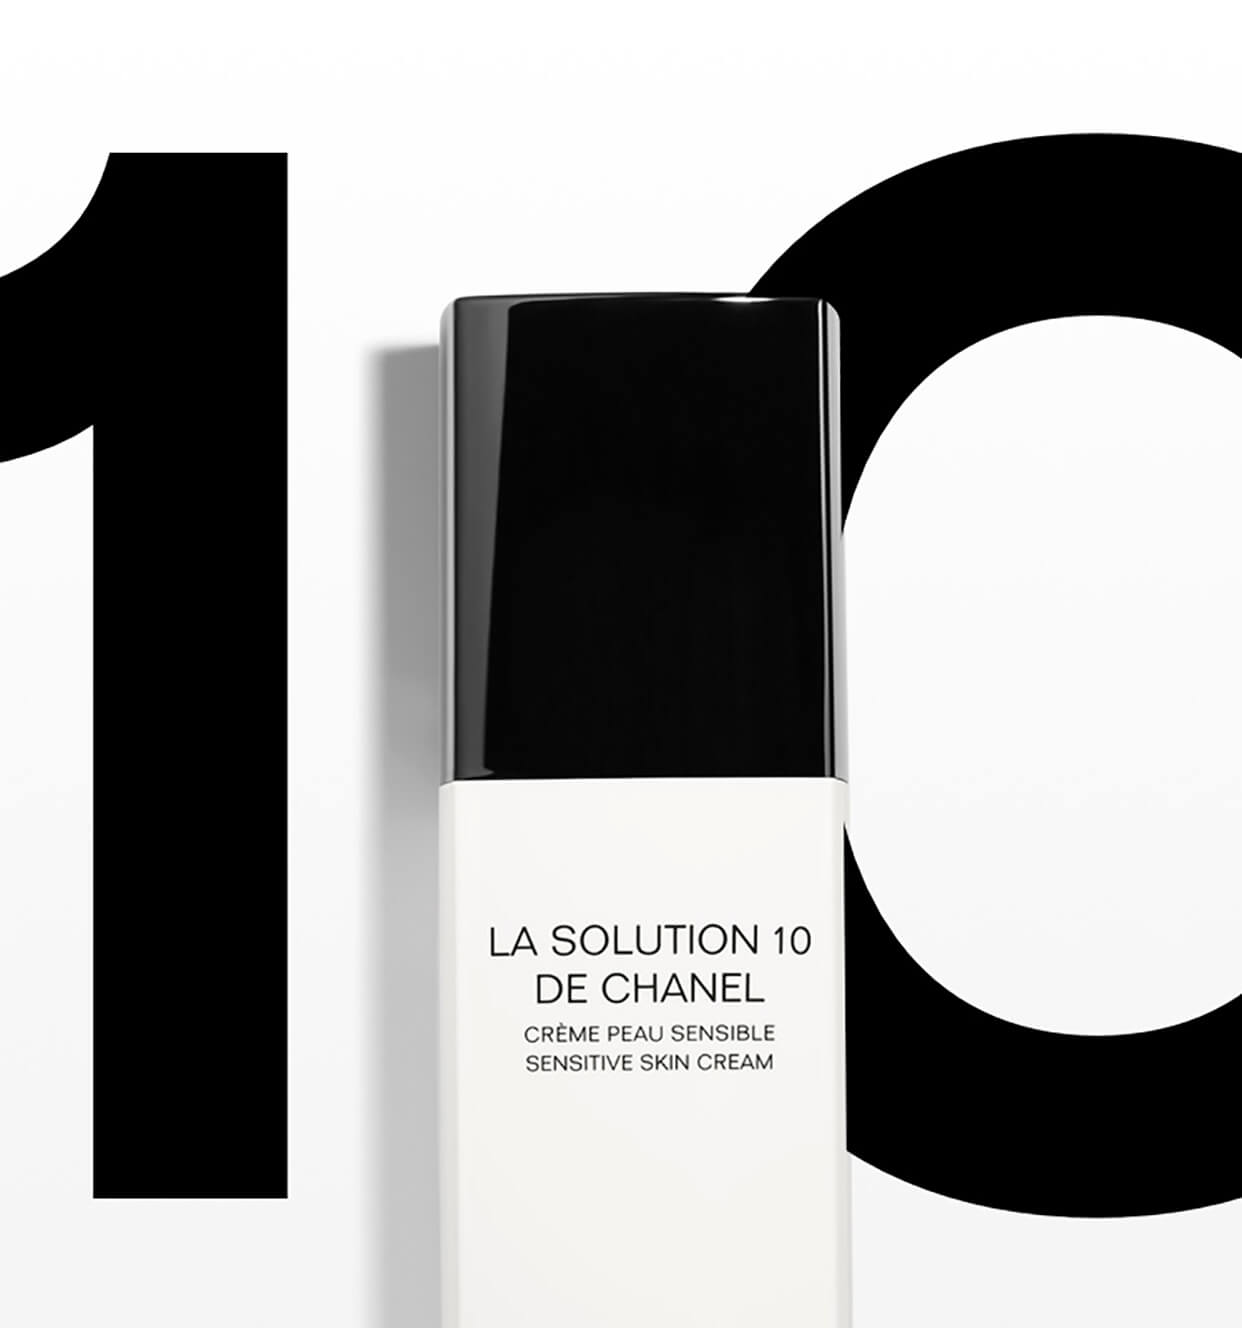 La Solution 10 de CHANEL - Skincare | CHANEL